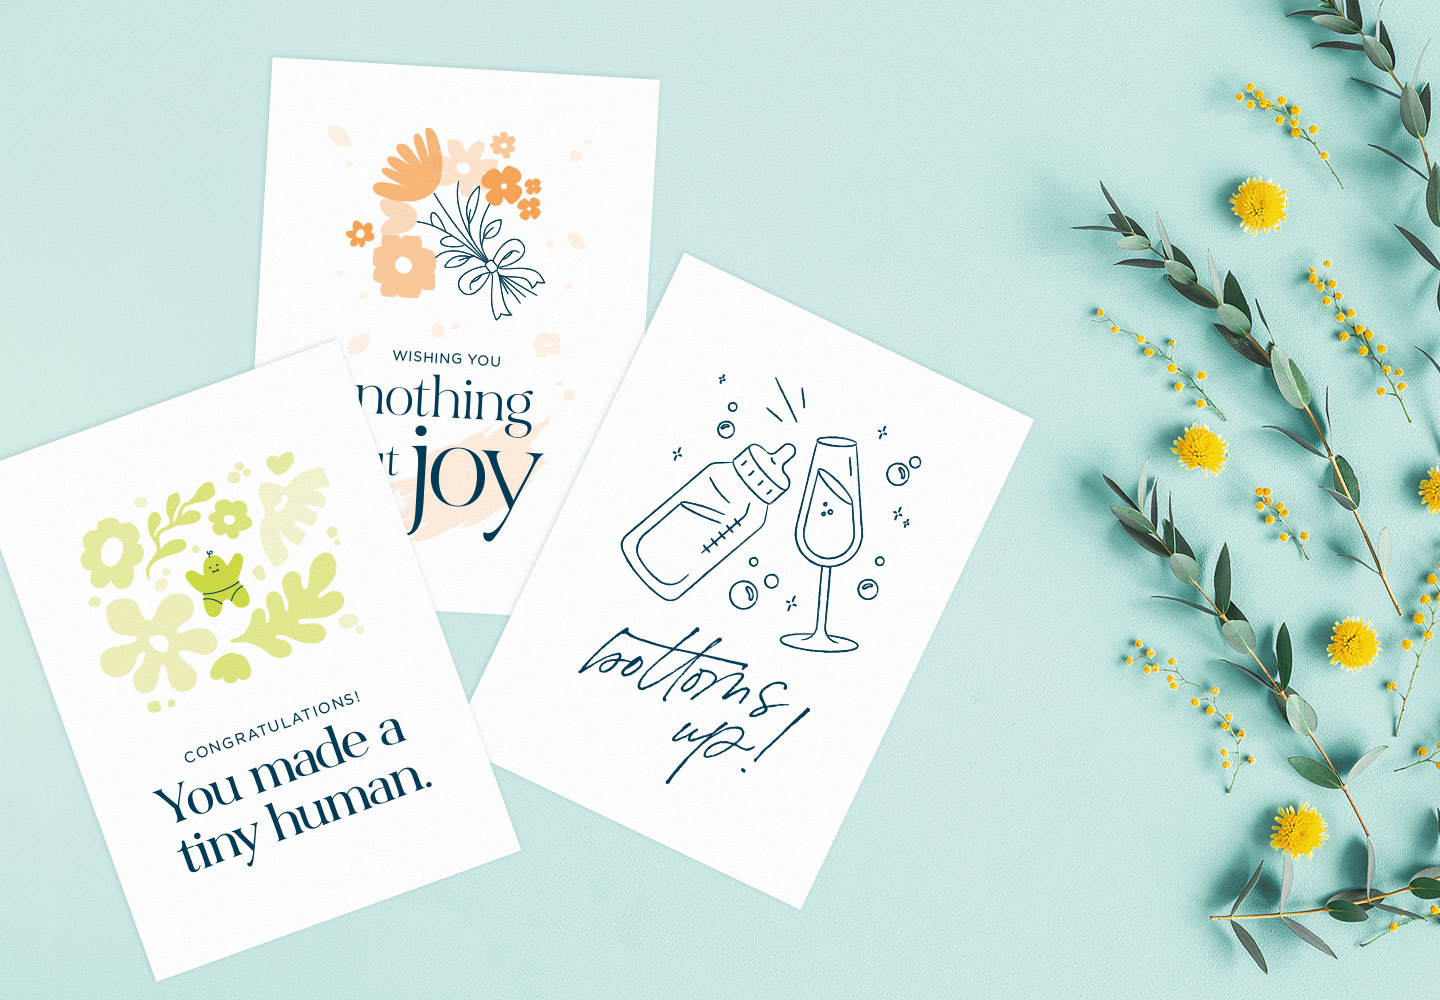 new baby cards on a blue background with flowers